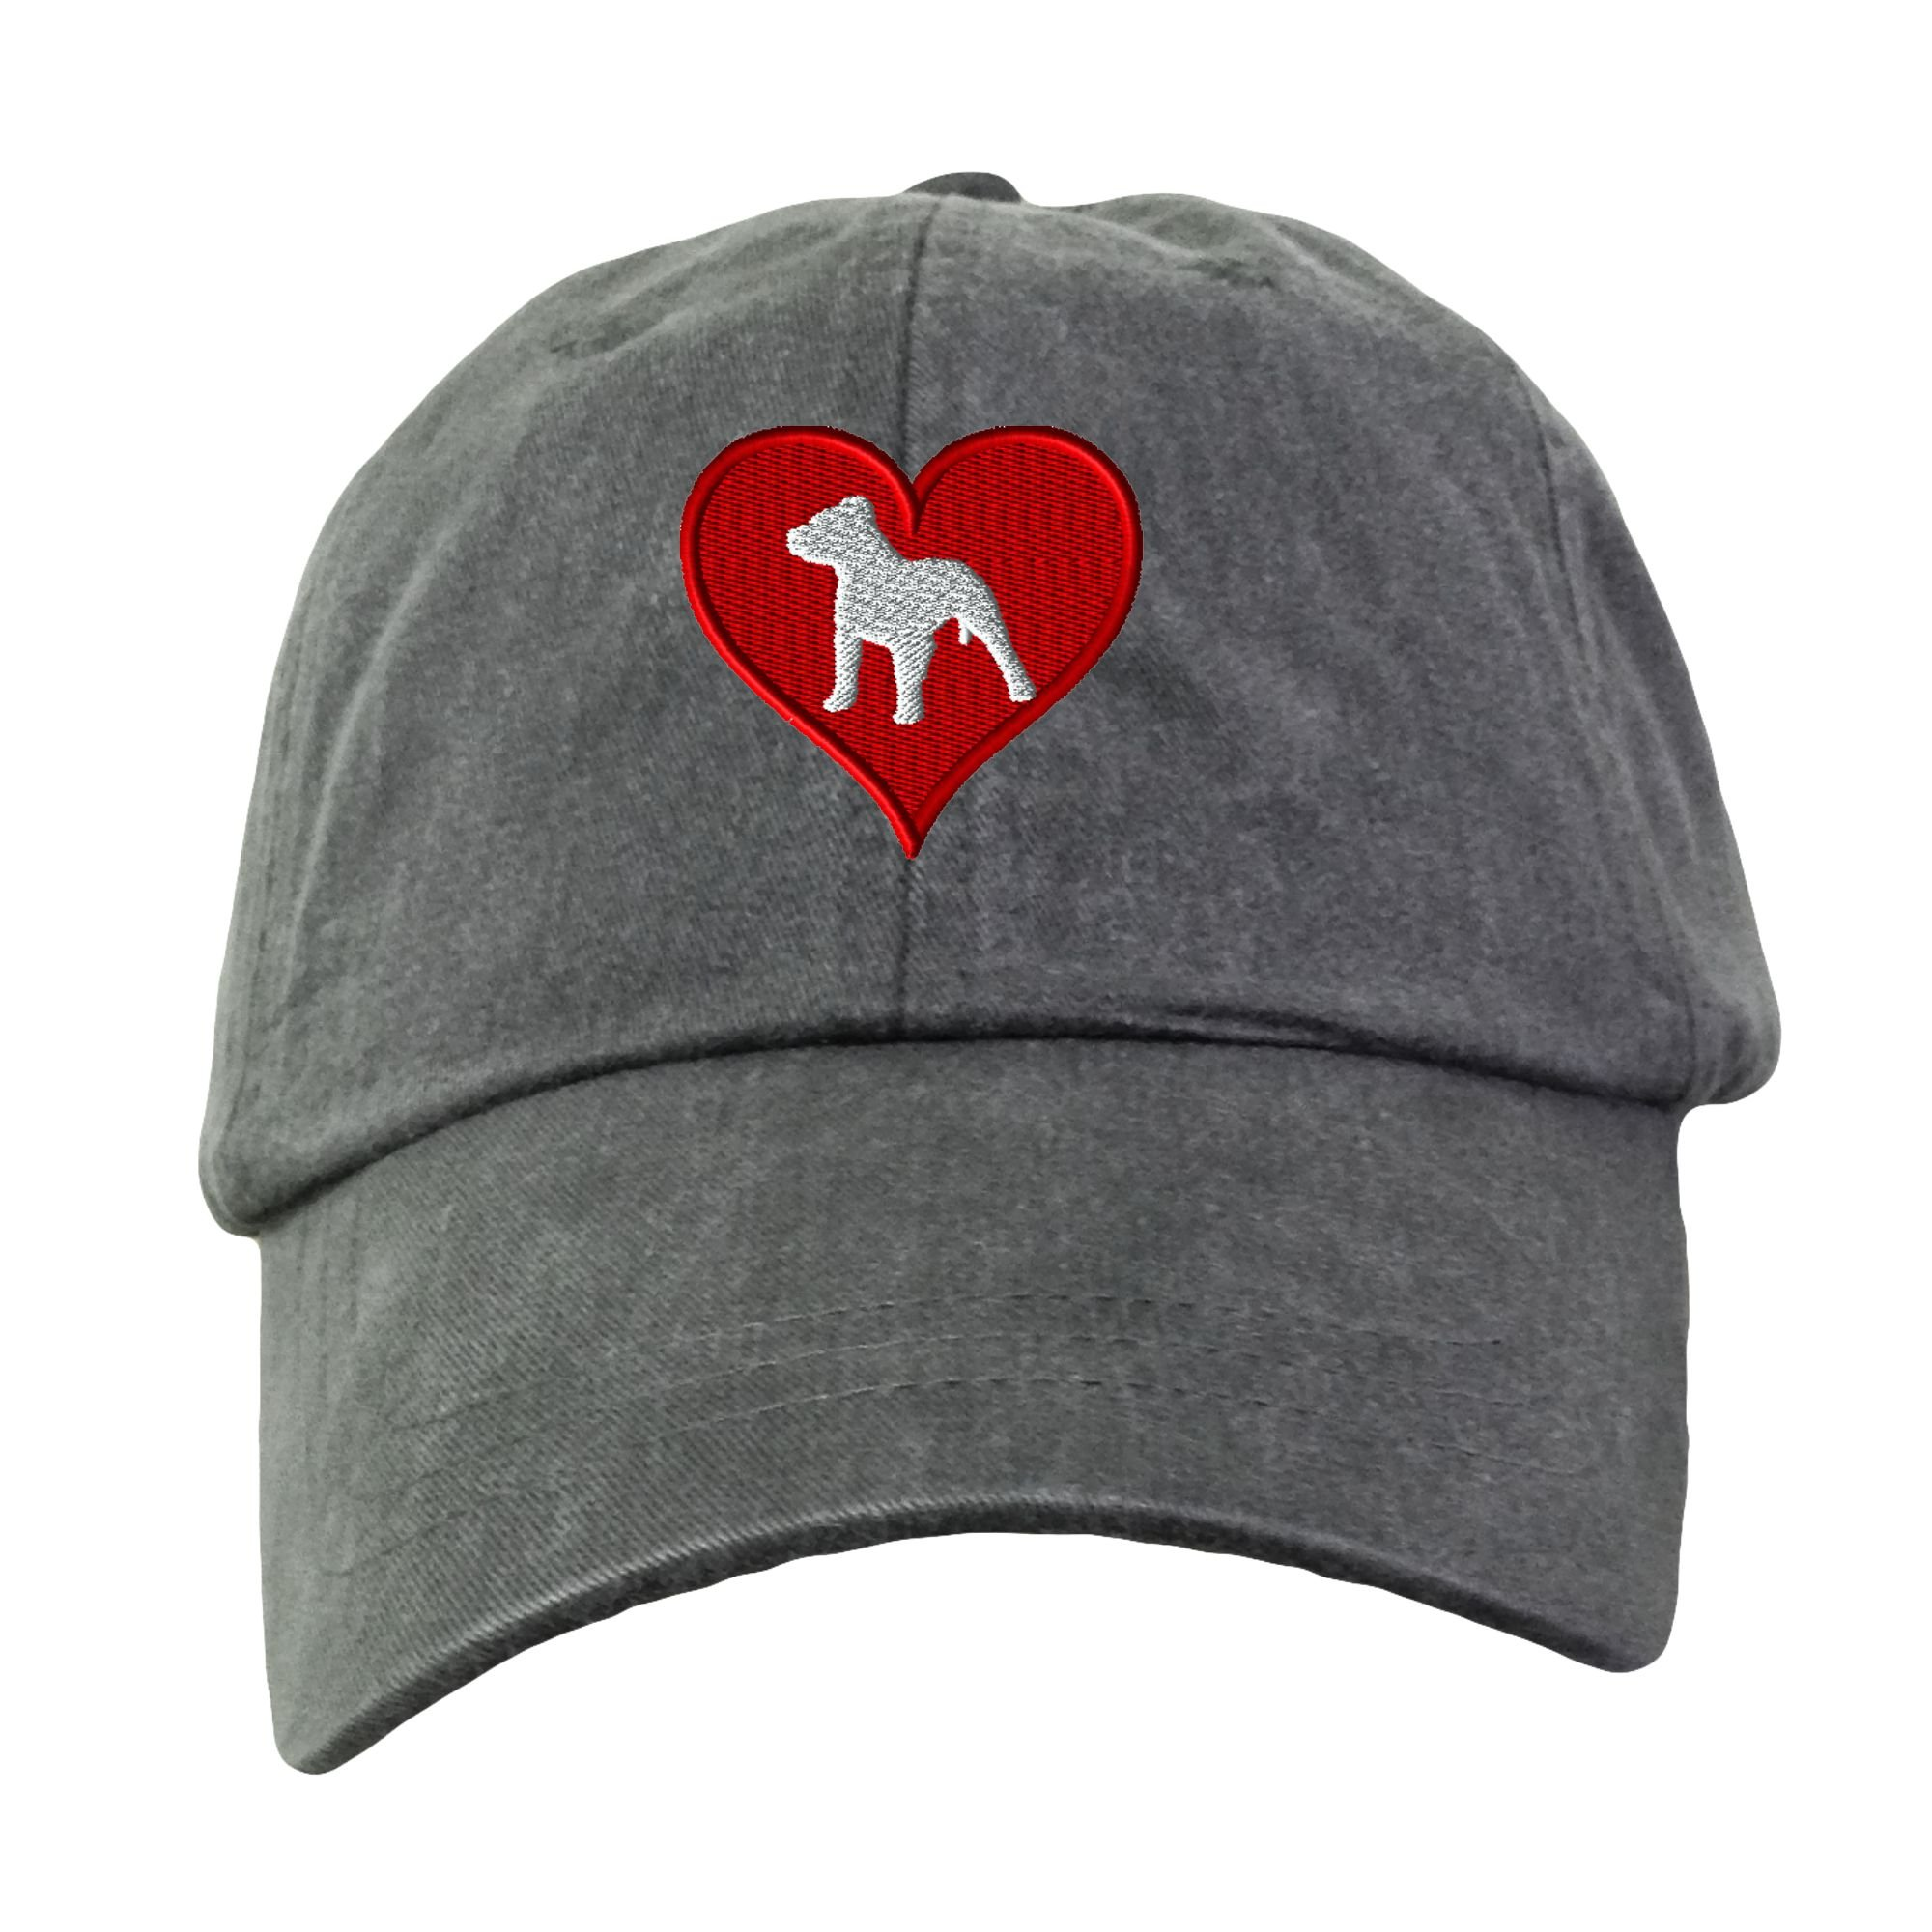 Love Heart Pitbull Embroidered Baseball Hat Dog Unisex Unstructured Low Profile Cap